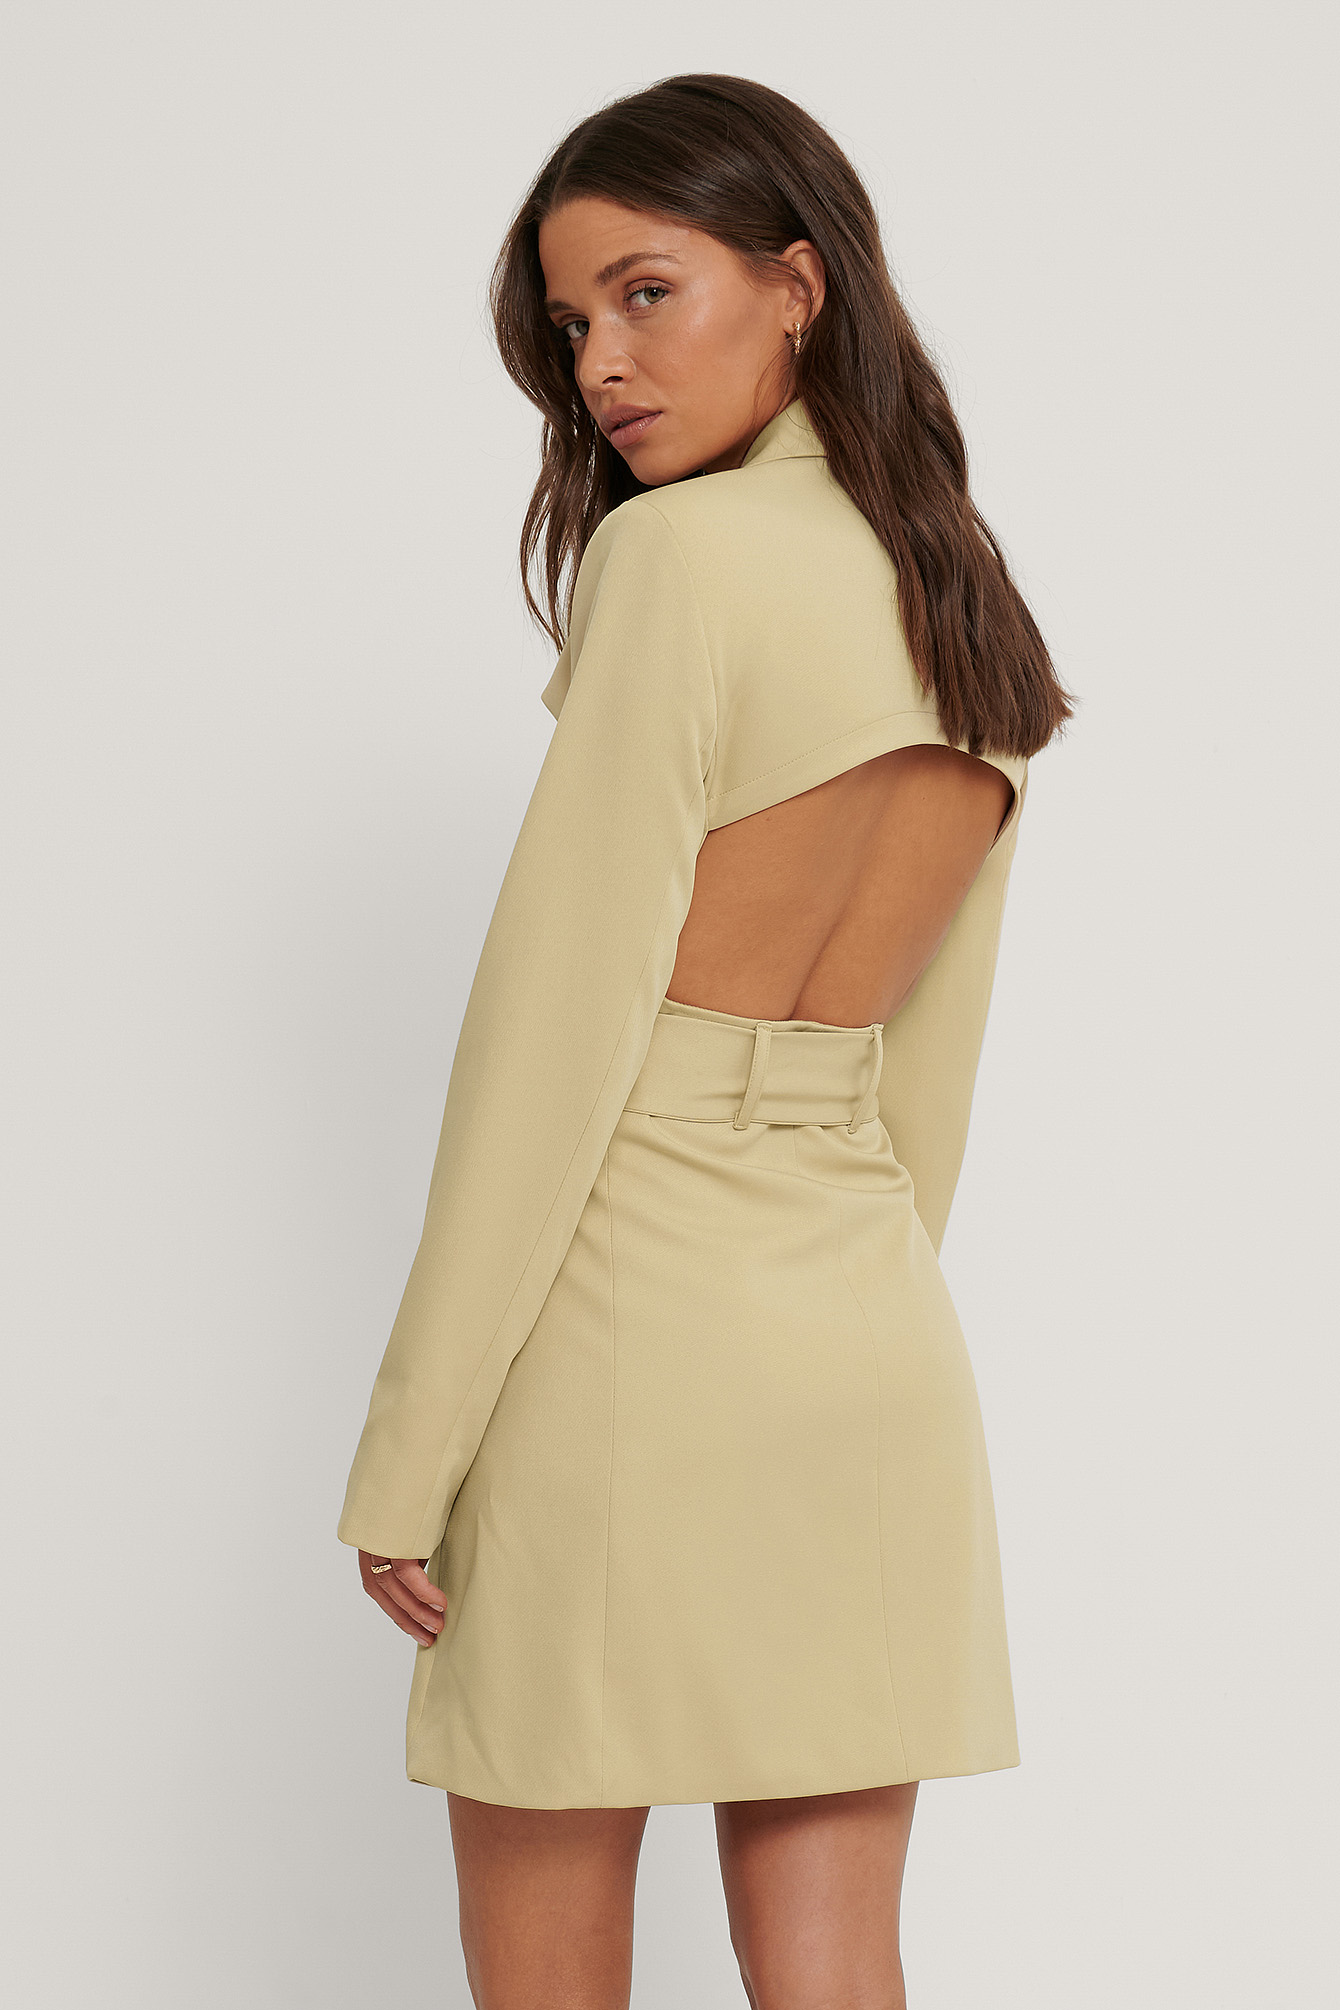 Light Beige Open Back Blazer Dress